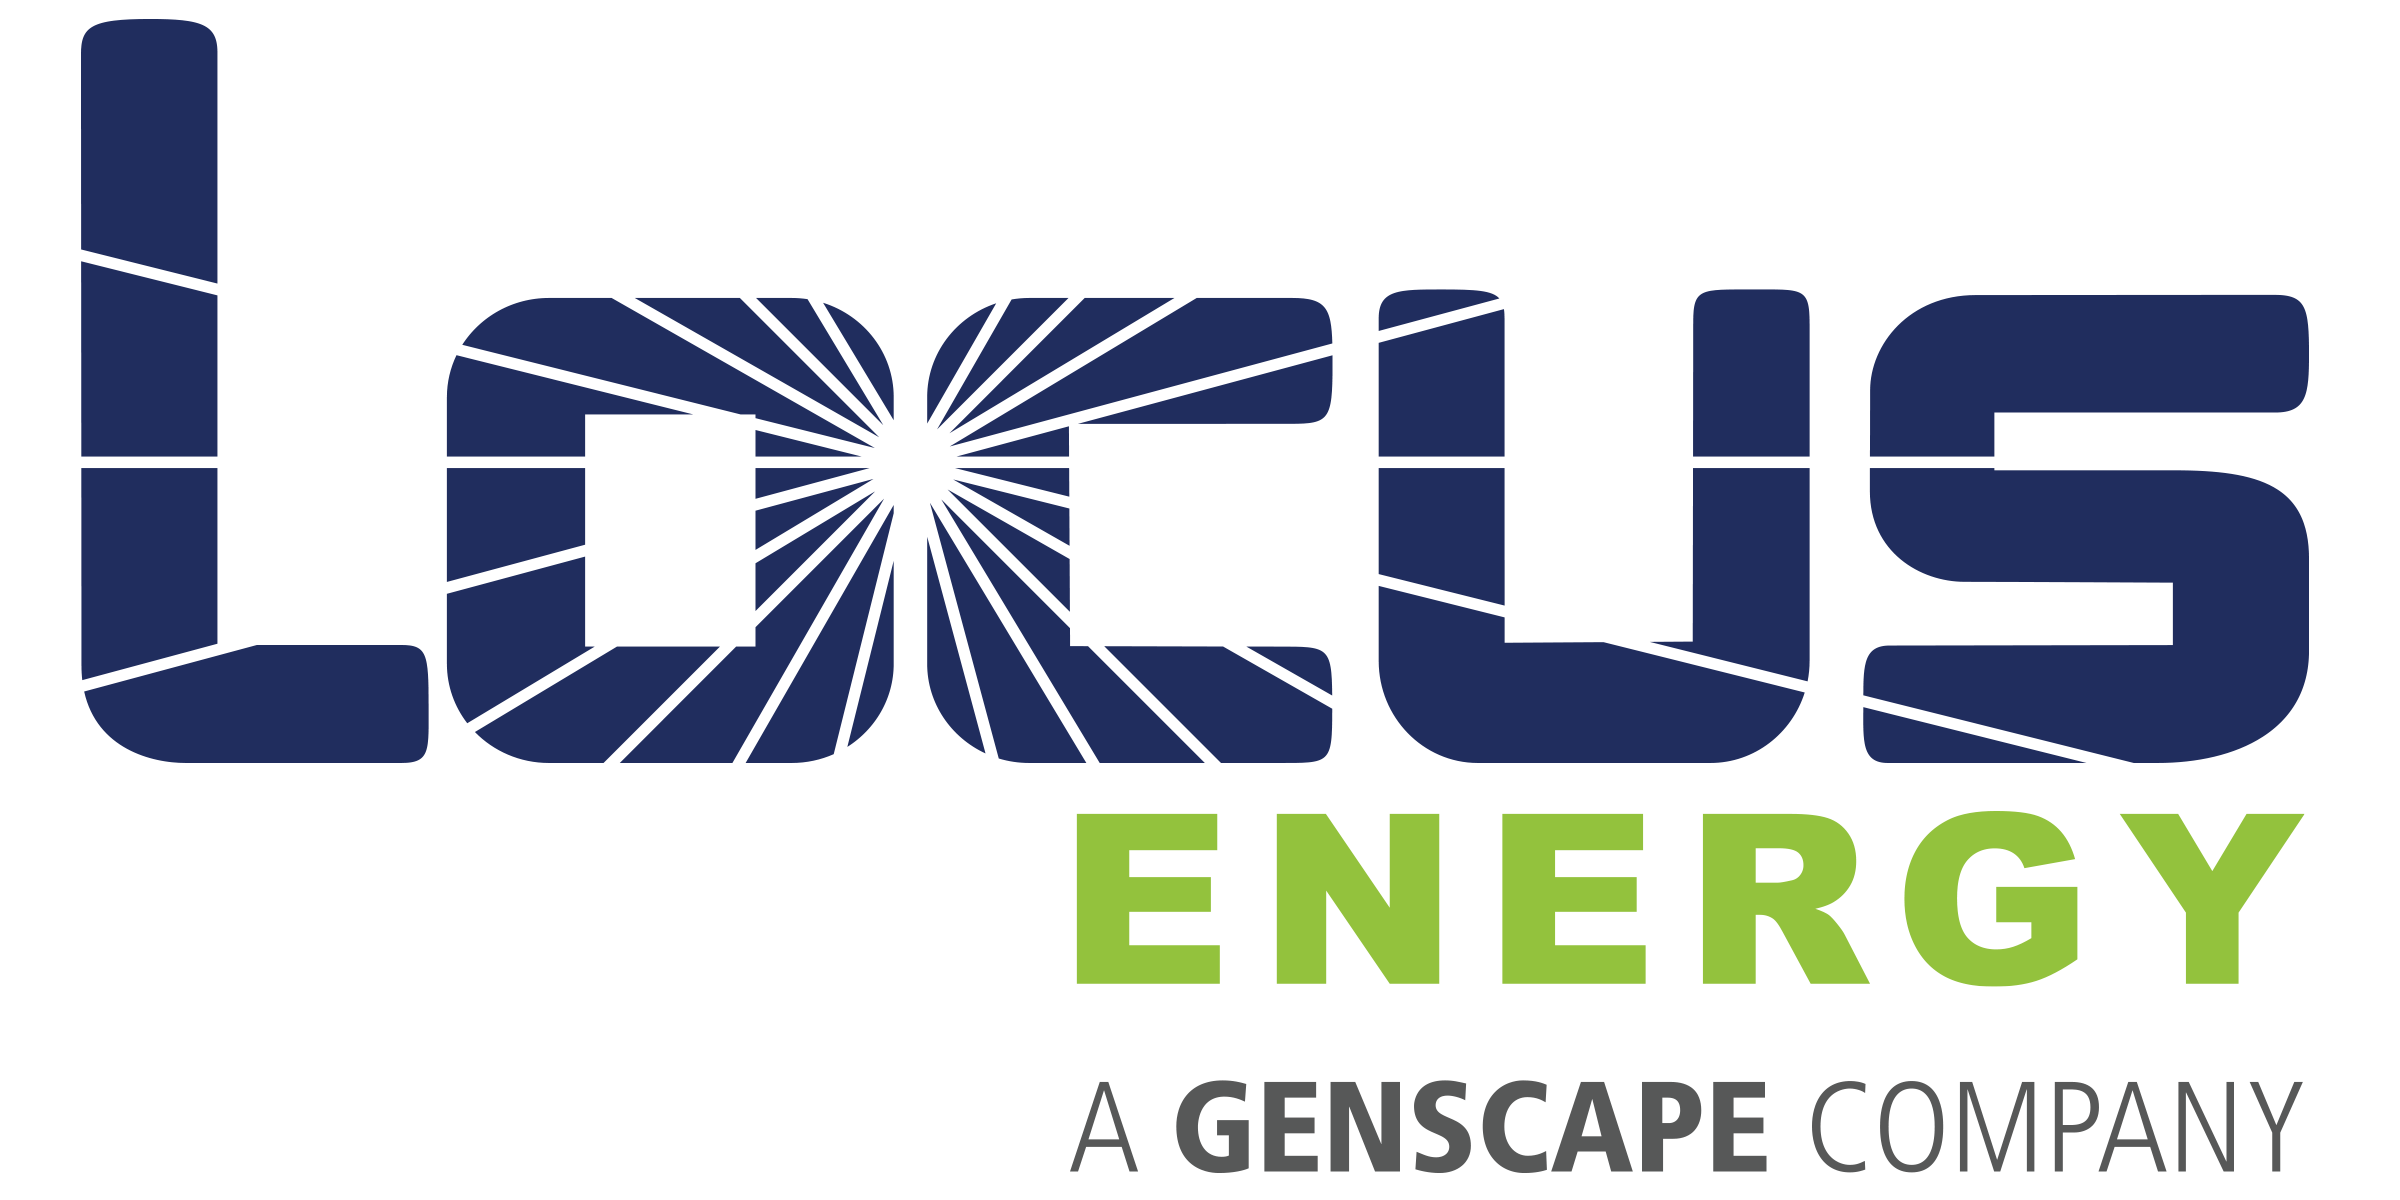 www.locusenergy.com